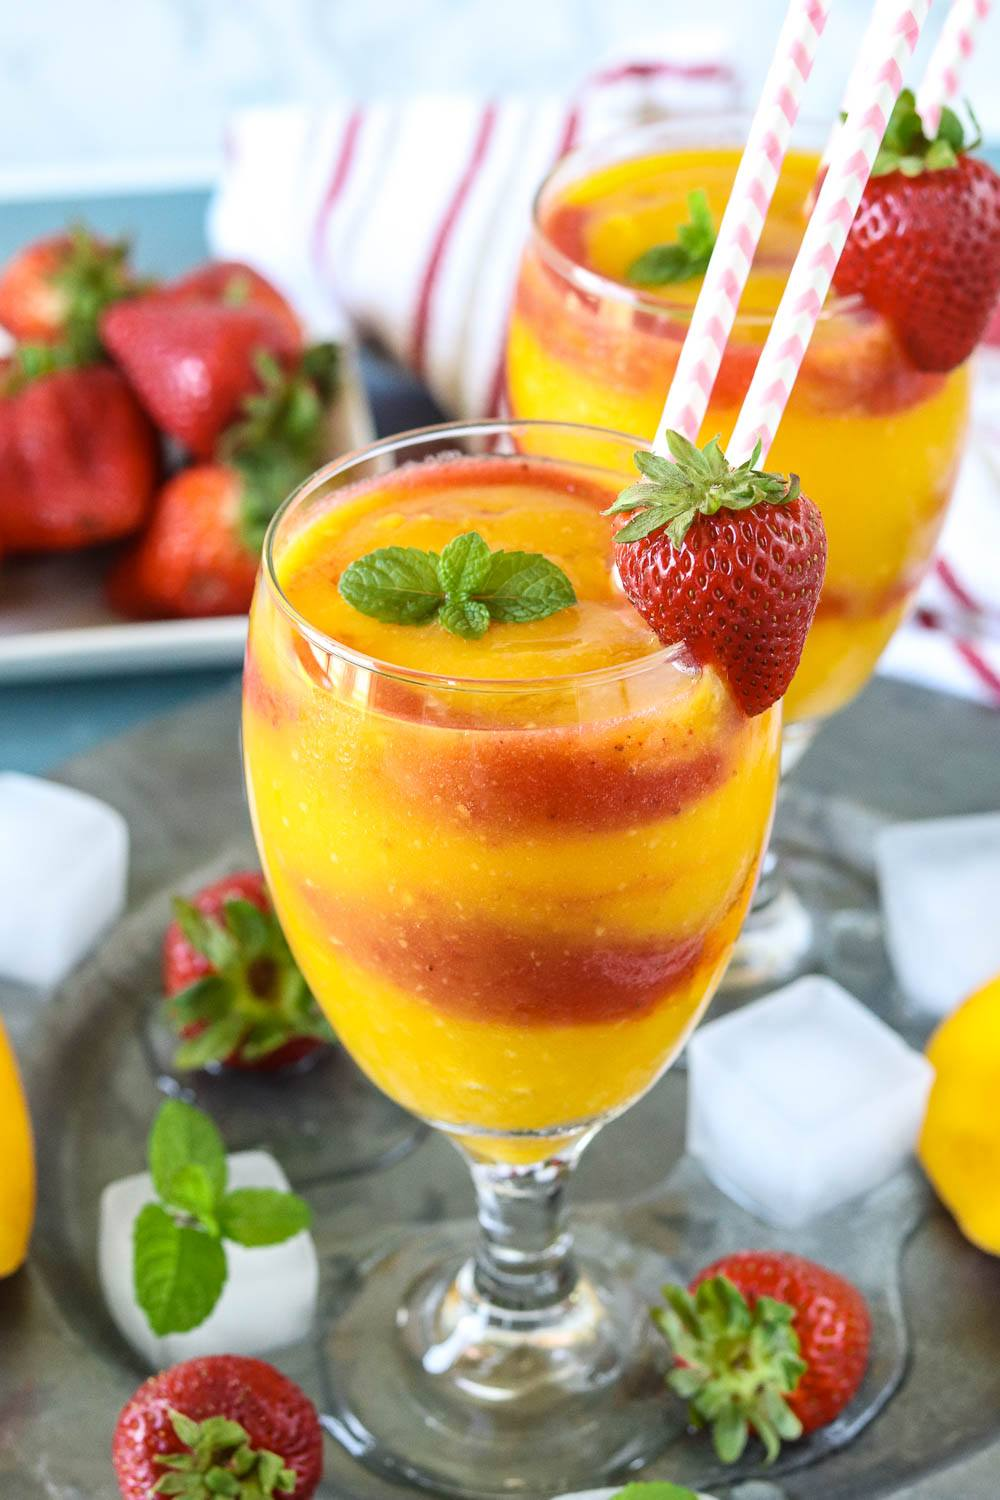 Non Alcoholic Strawberry Mango Daiquiri - Ruchiskitchen